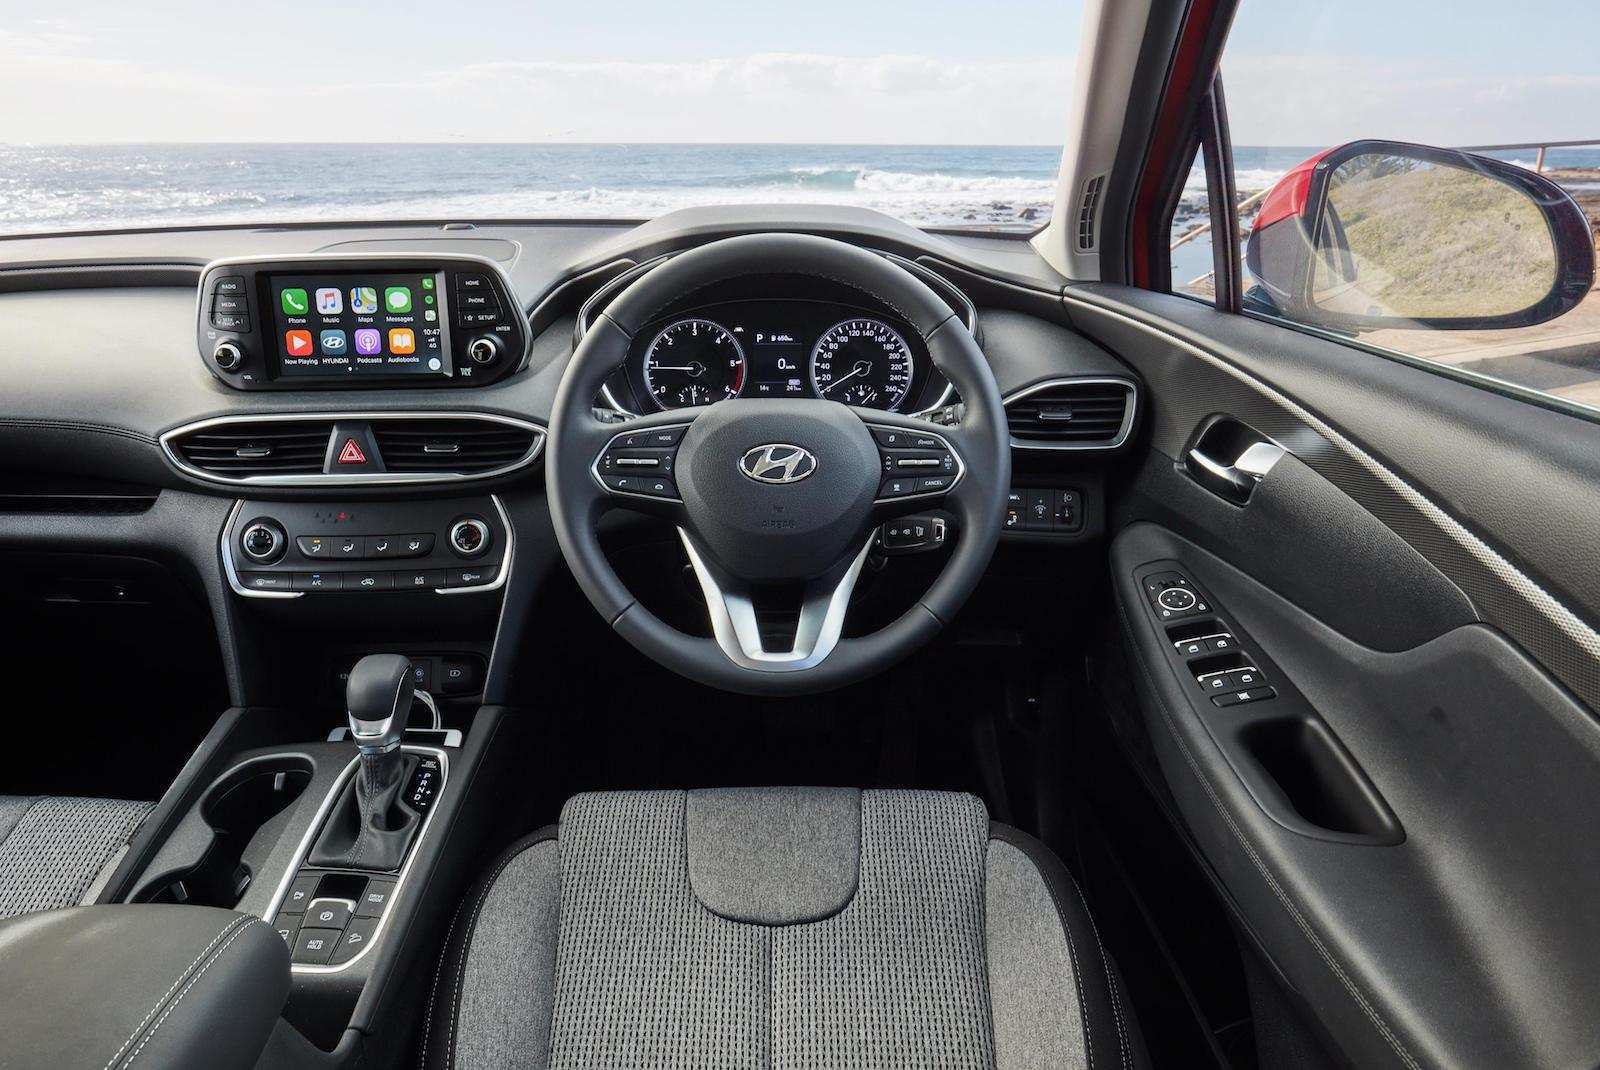 70 The Best 2019 Hyundai Santa Fe Interior Specs And Review